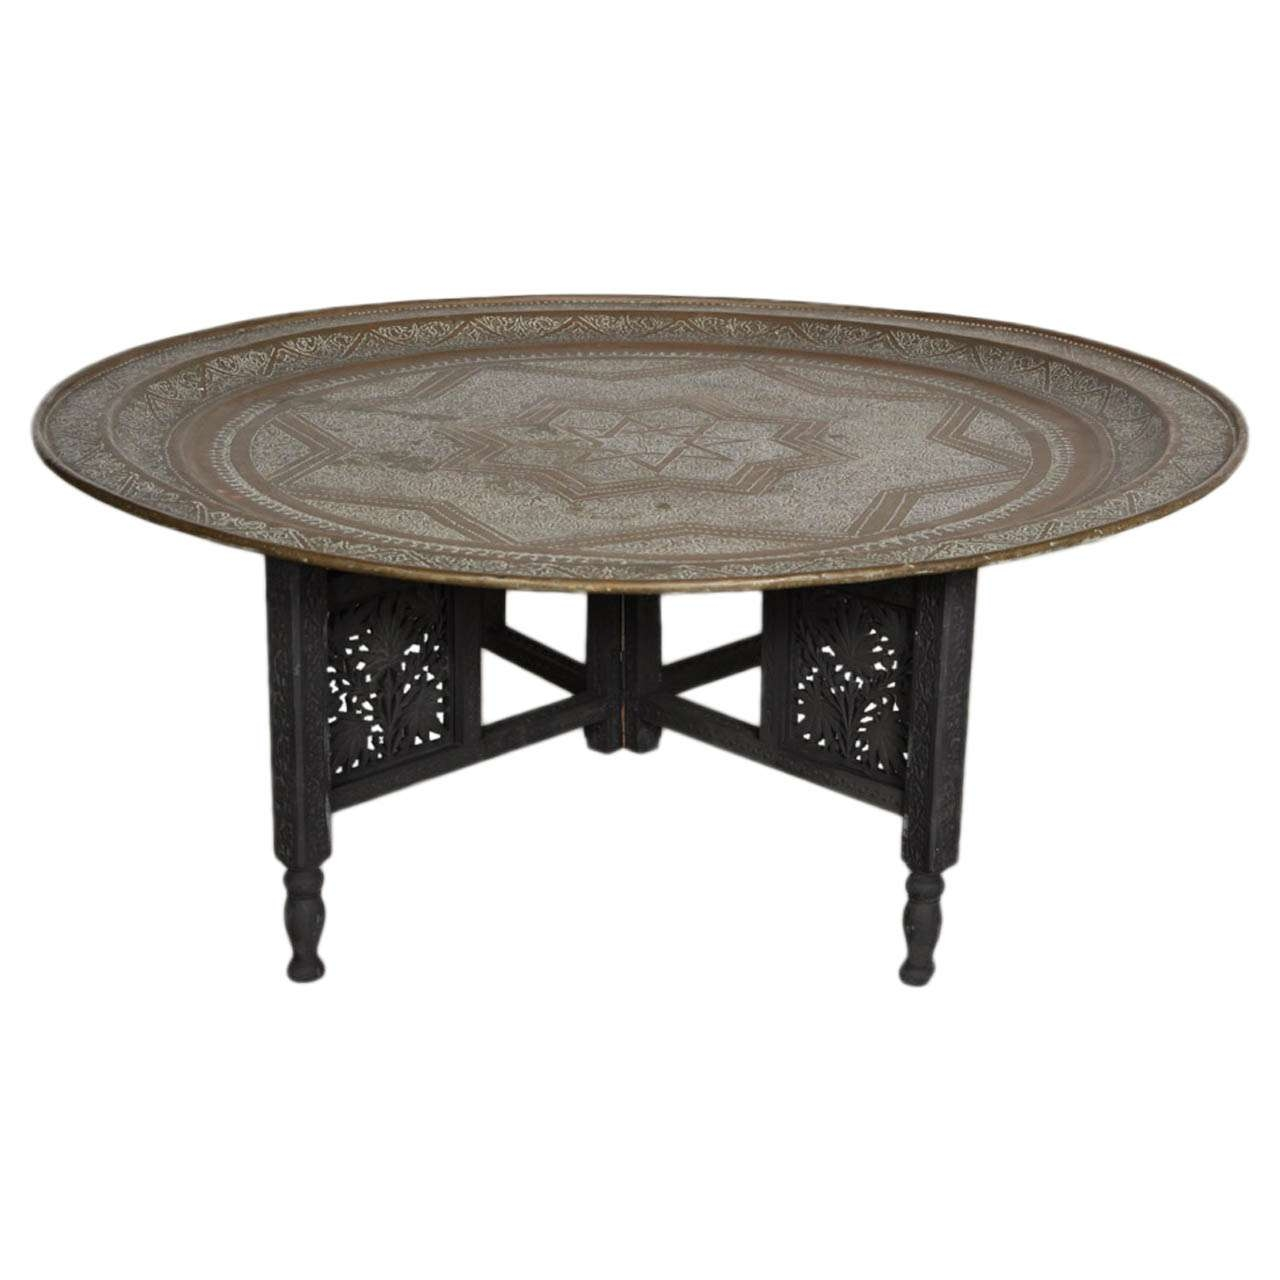 Preferred Round Tray Coffee Tables With Coffee Table Coffee Table Moroccan Round Brass Tray Foxa Black (View 16 of 20)